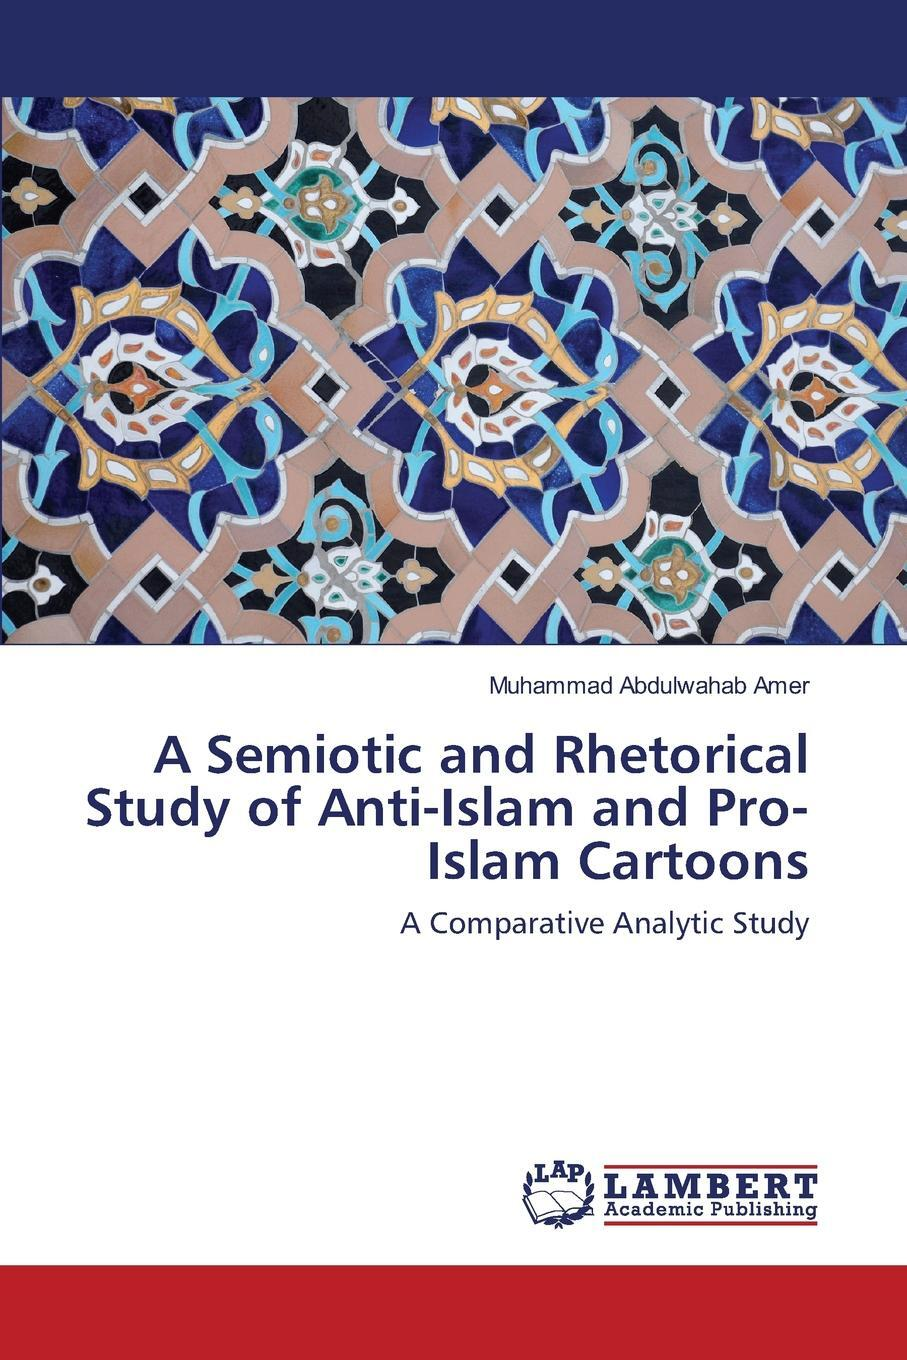 A Semiotic and Rhetorical Study of Anti-Islam and Pro-Islam Cartoons. Abdulwahab Amer Muhammad